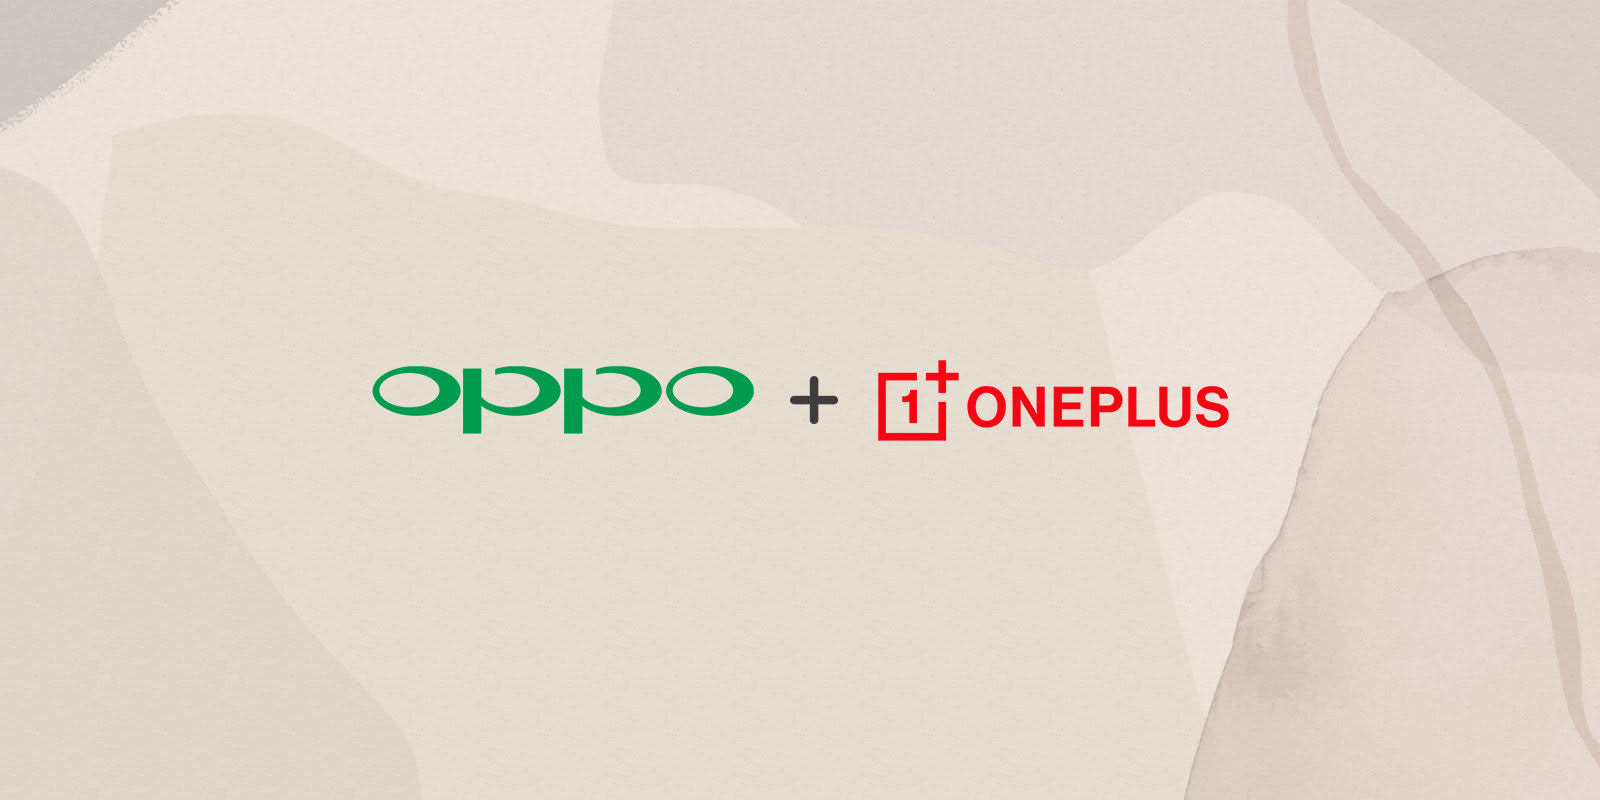 """OnePlus announces merger with OPPO, will continue to operate as an """"independent brand"""""""